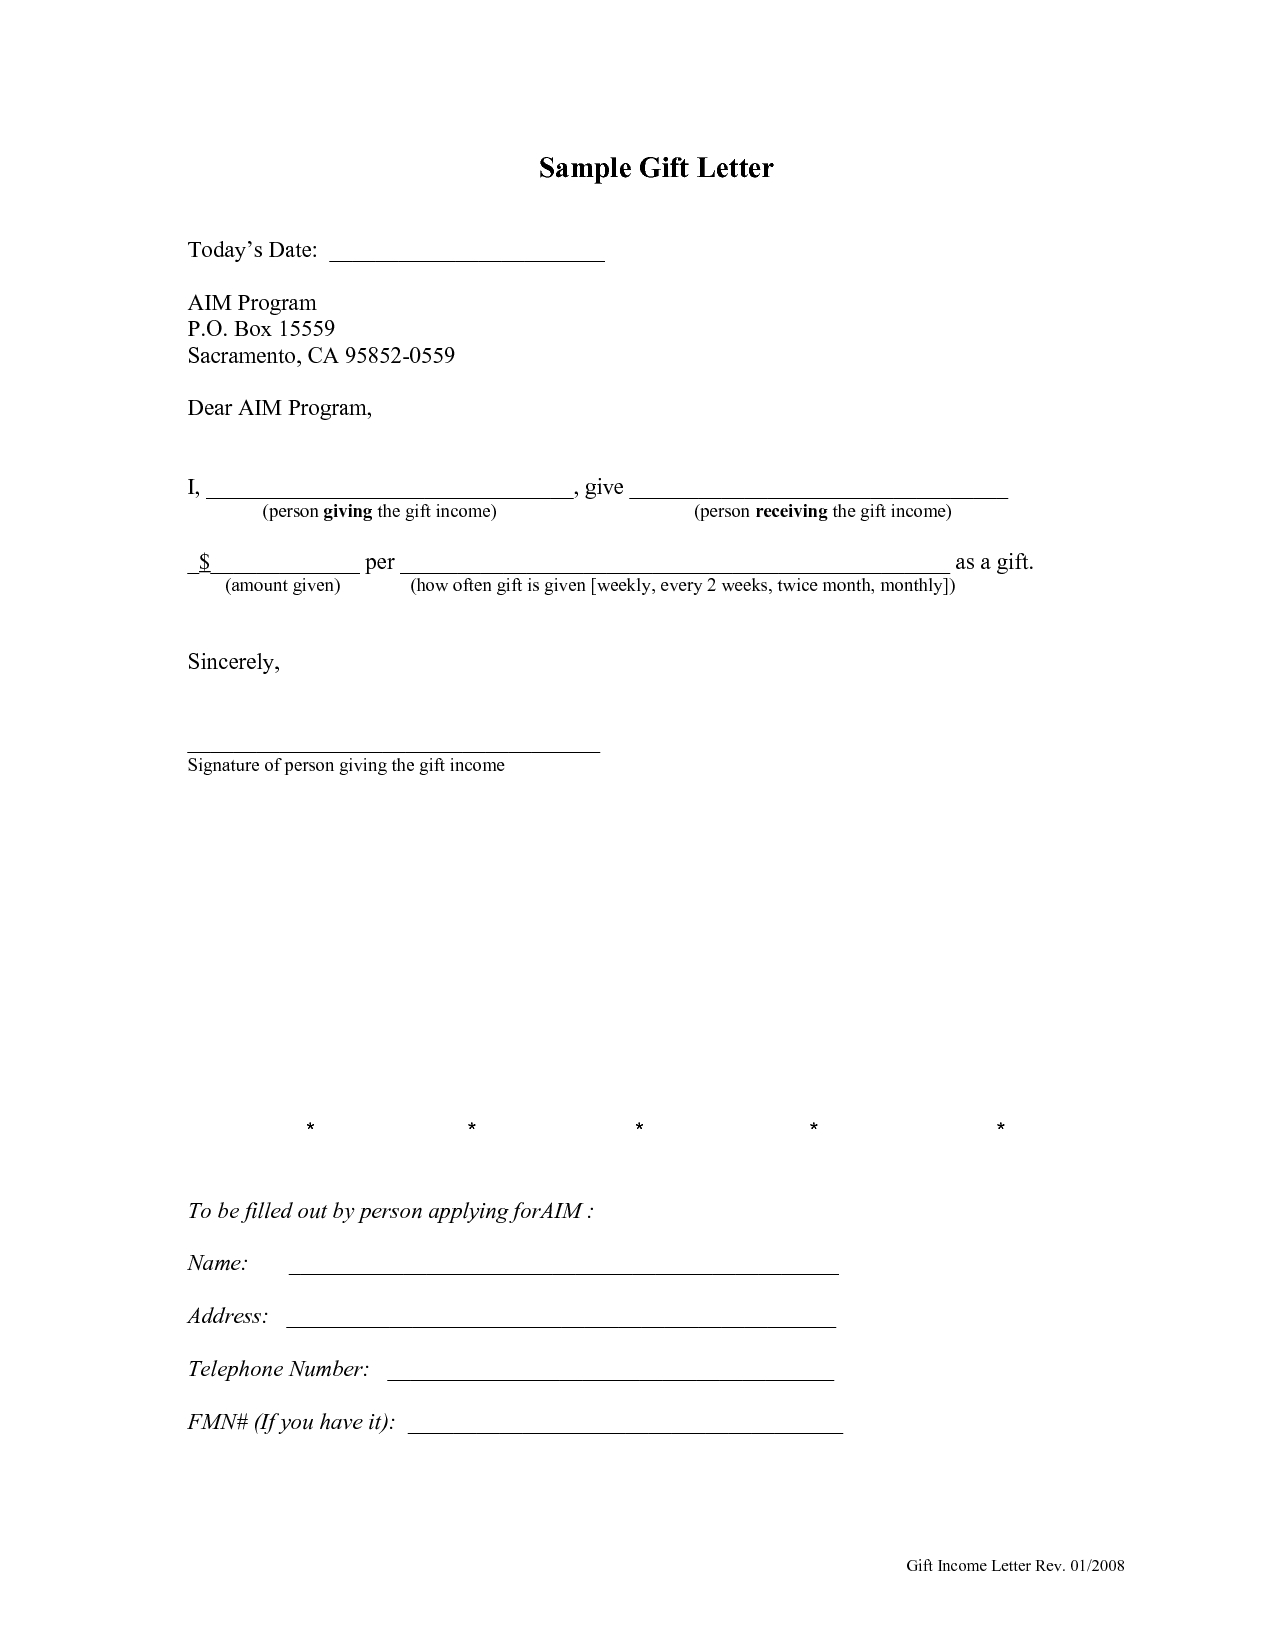 Gift Letter Template for Home Loan - How to Write A Gift Letter for Mortgage Image Collections Letter